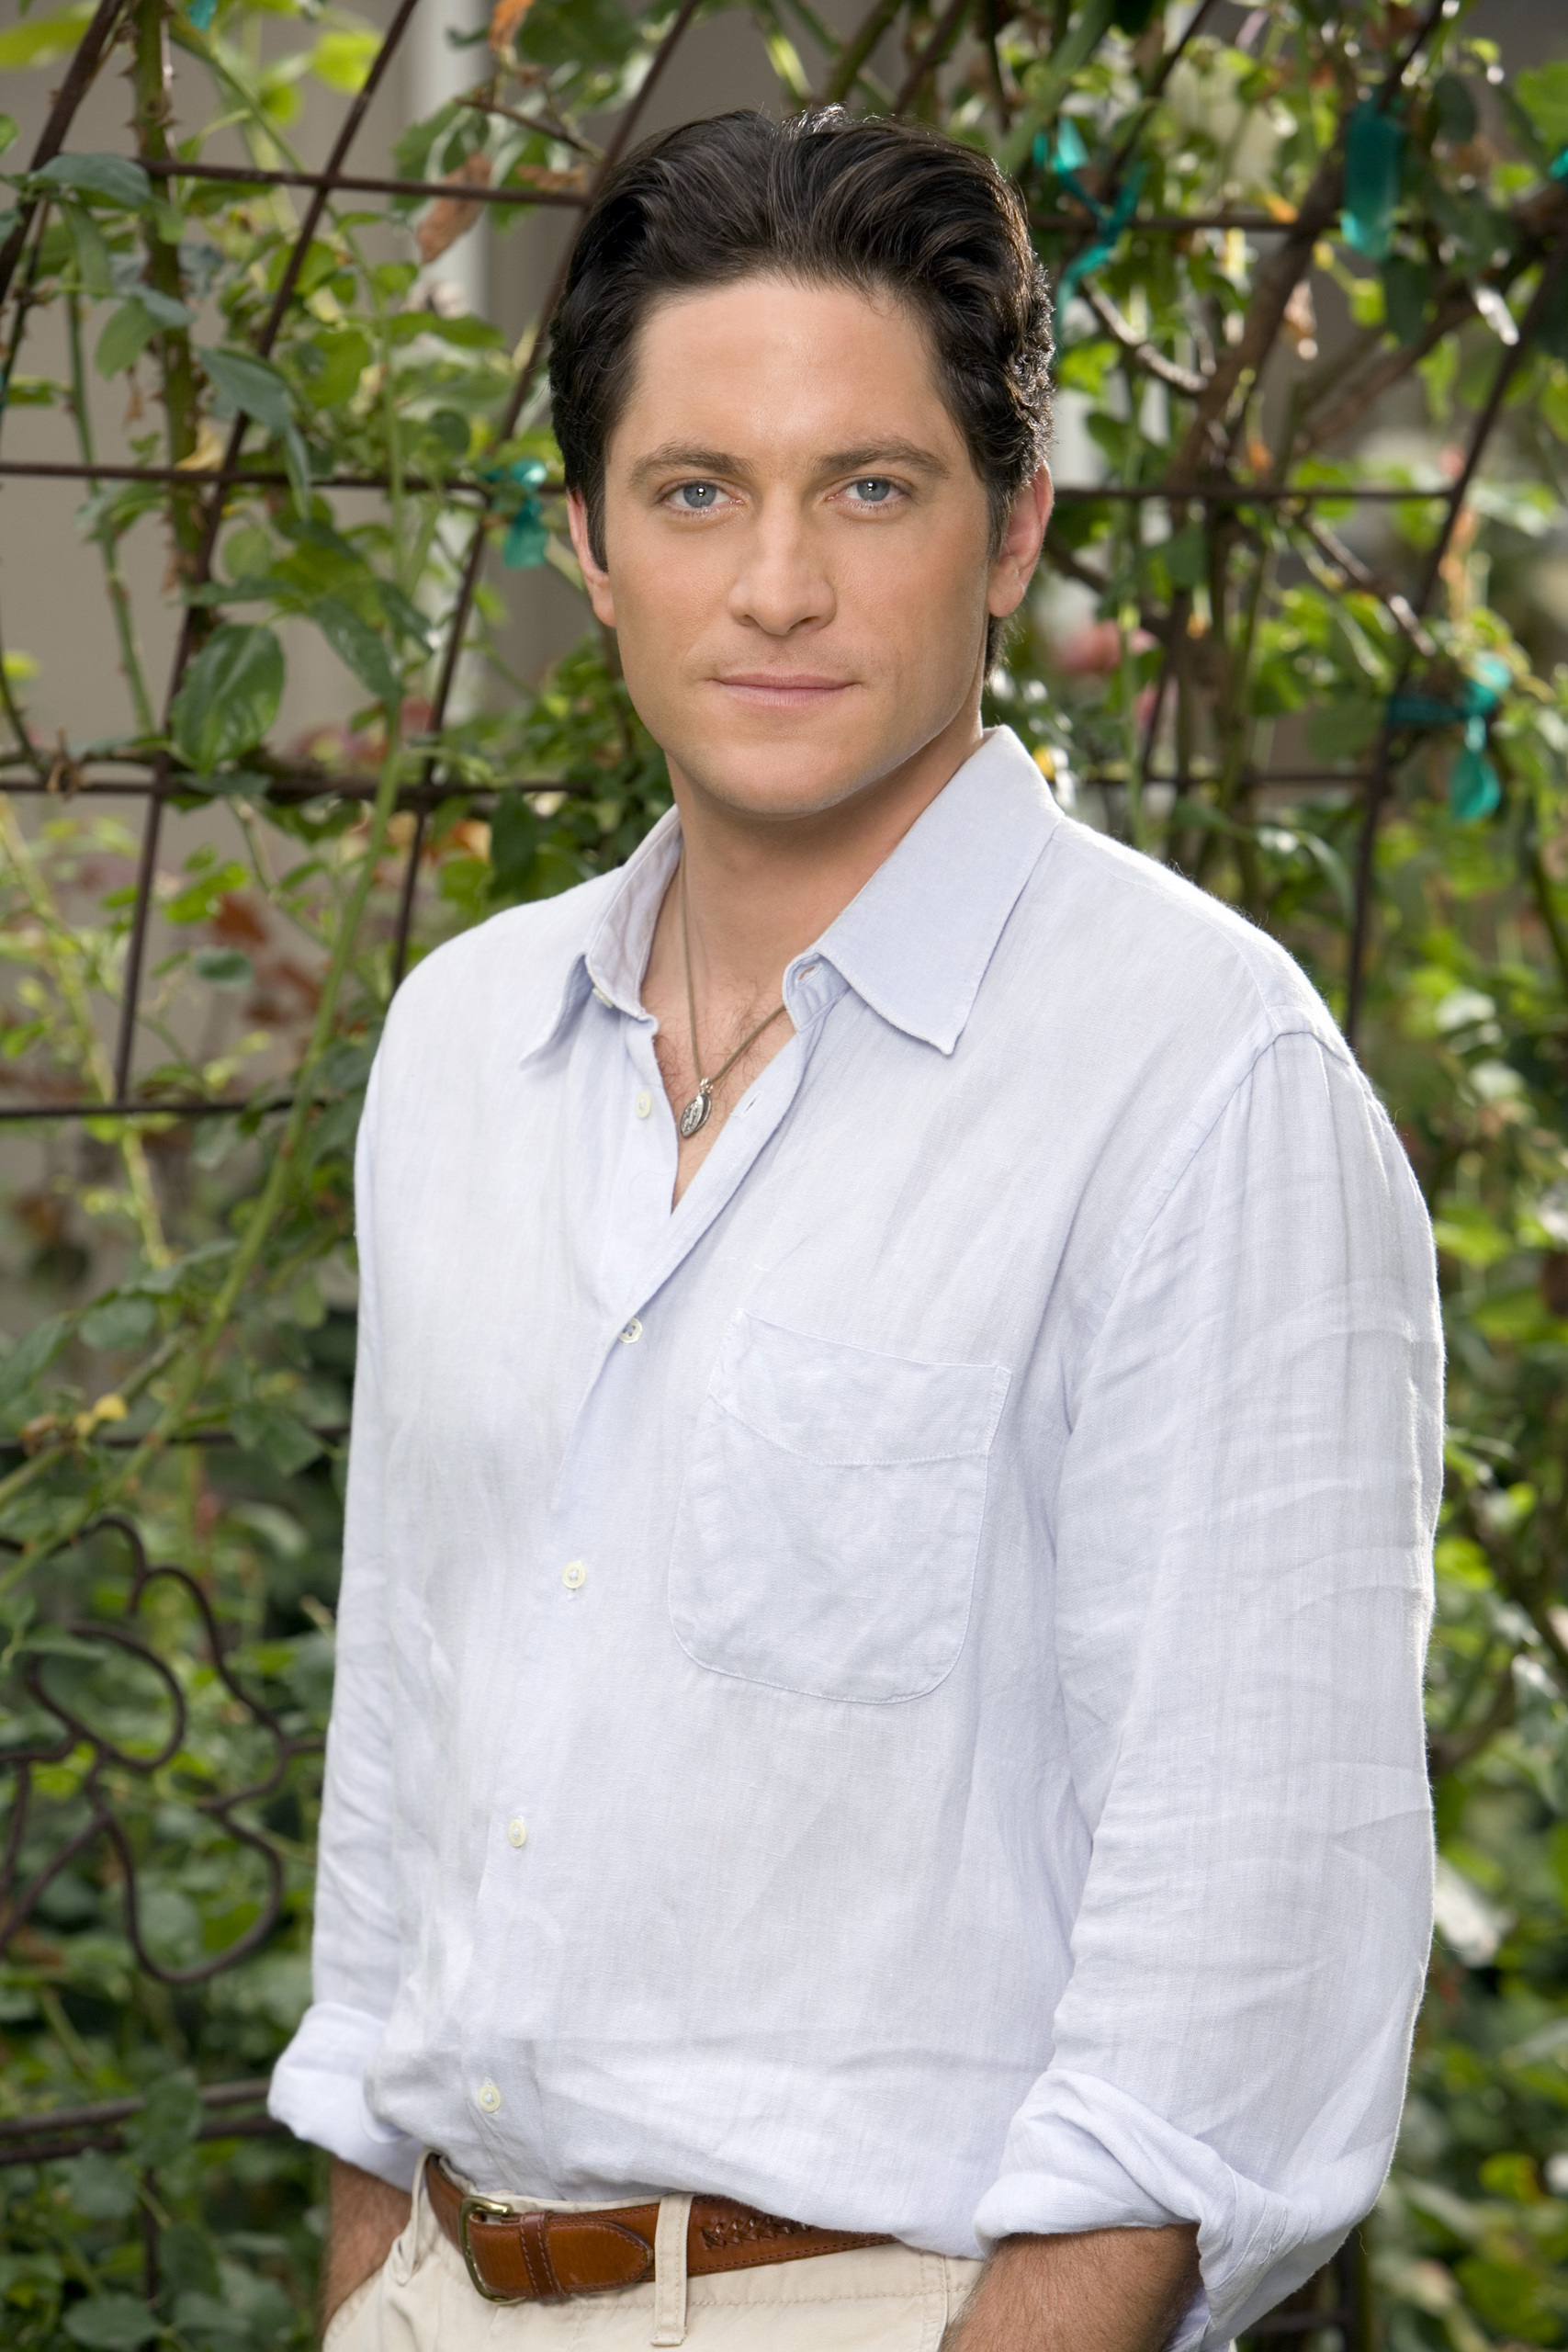 david conrad 2015david conrad 2016, david conrad leather jacket, david conrad csi miami, david conrad castle, david conrad jacket, david conrad instagram, david conrad married to nina garcia, david conrad wife, david conrad privat, david conrad, david conrad 2015, david conrad actor, david conrad and jennifer love hewitt, david conrad ghost whisperer, david conrad wiki, david conrad wikipedia, david conrad vida personal, david conrad married 2012, david conrad et sa femme, david conrad leaving ghost whisperer